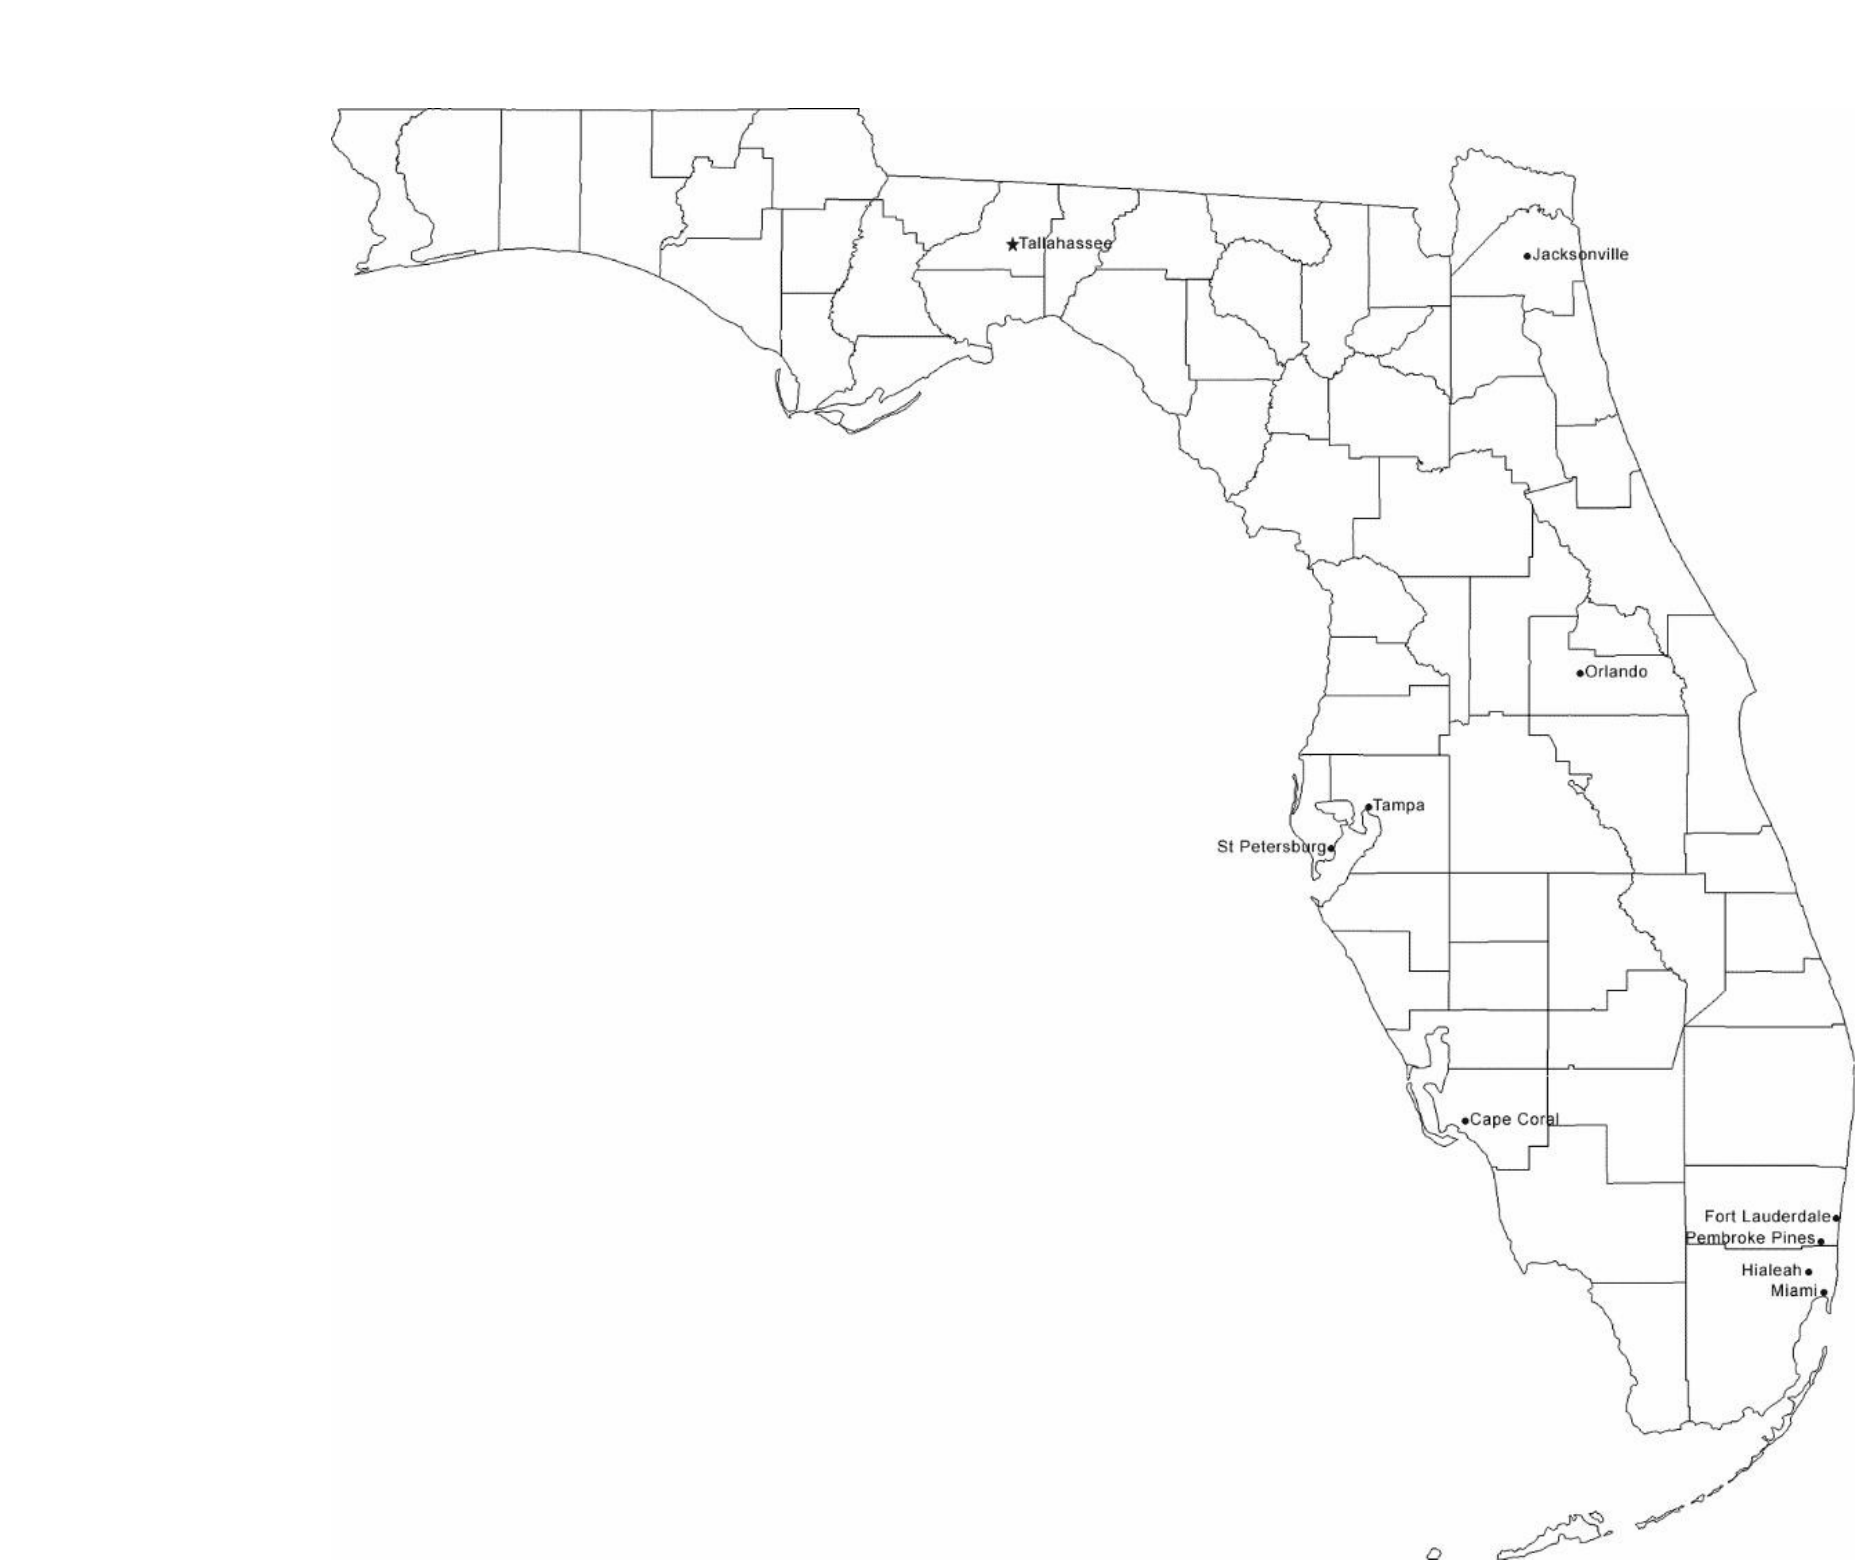 Map Florida City Names.Map Of Florida Cities With City Names Free Download